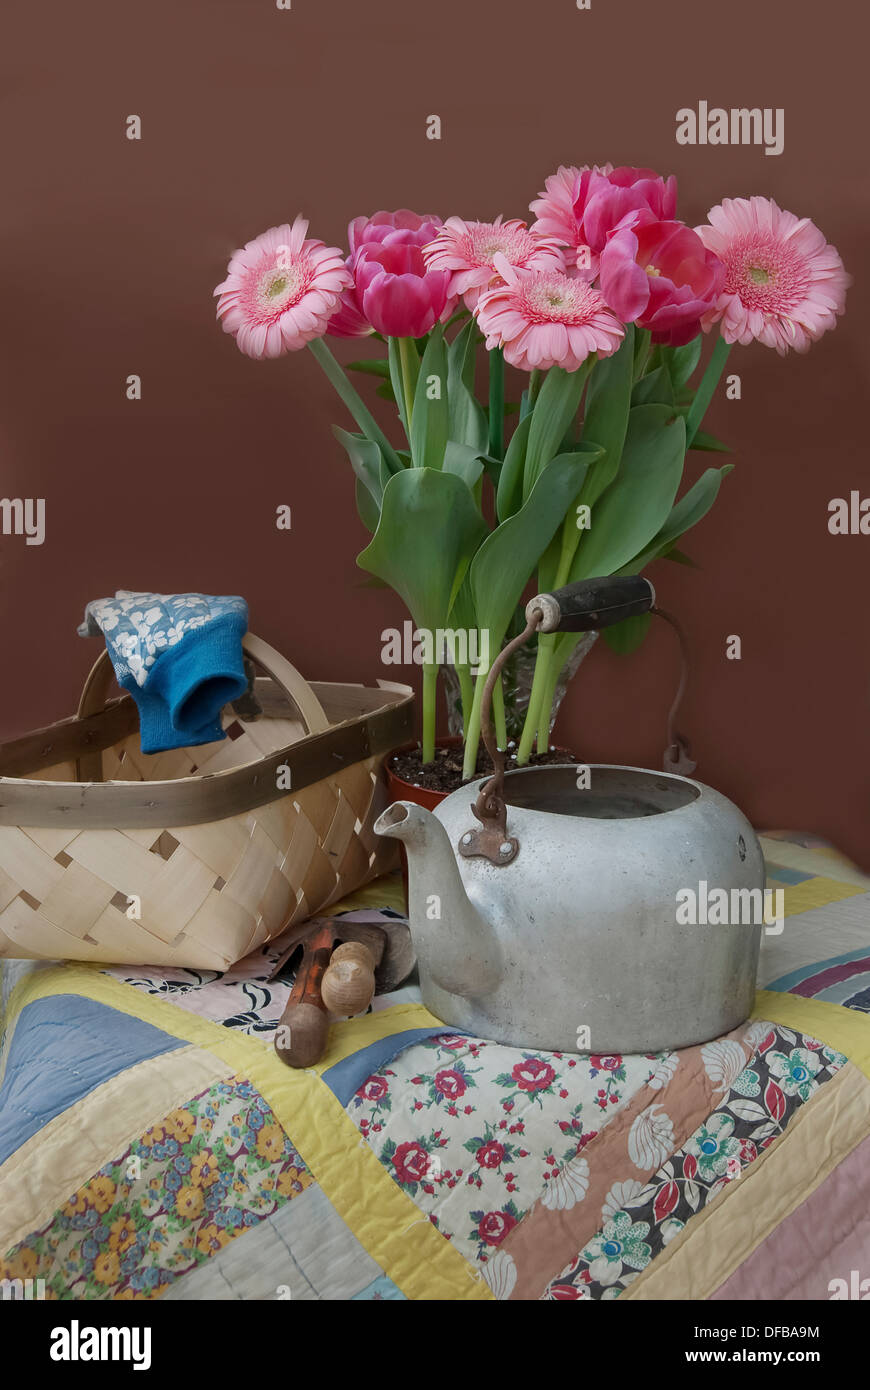 A basket, an old tea pot, gloves, gardening tools, pink tulips, pink gerber daisies on a hand made quilt. - Stock Image